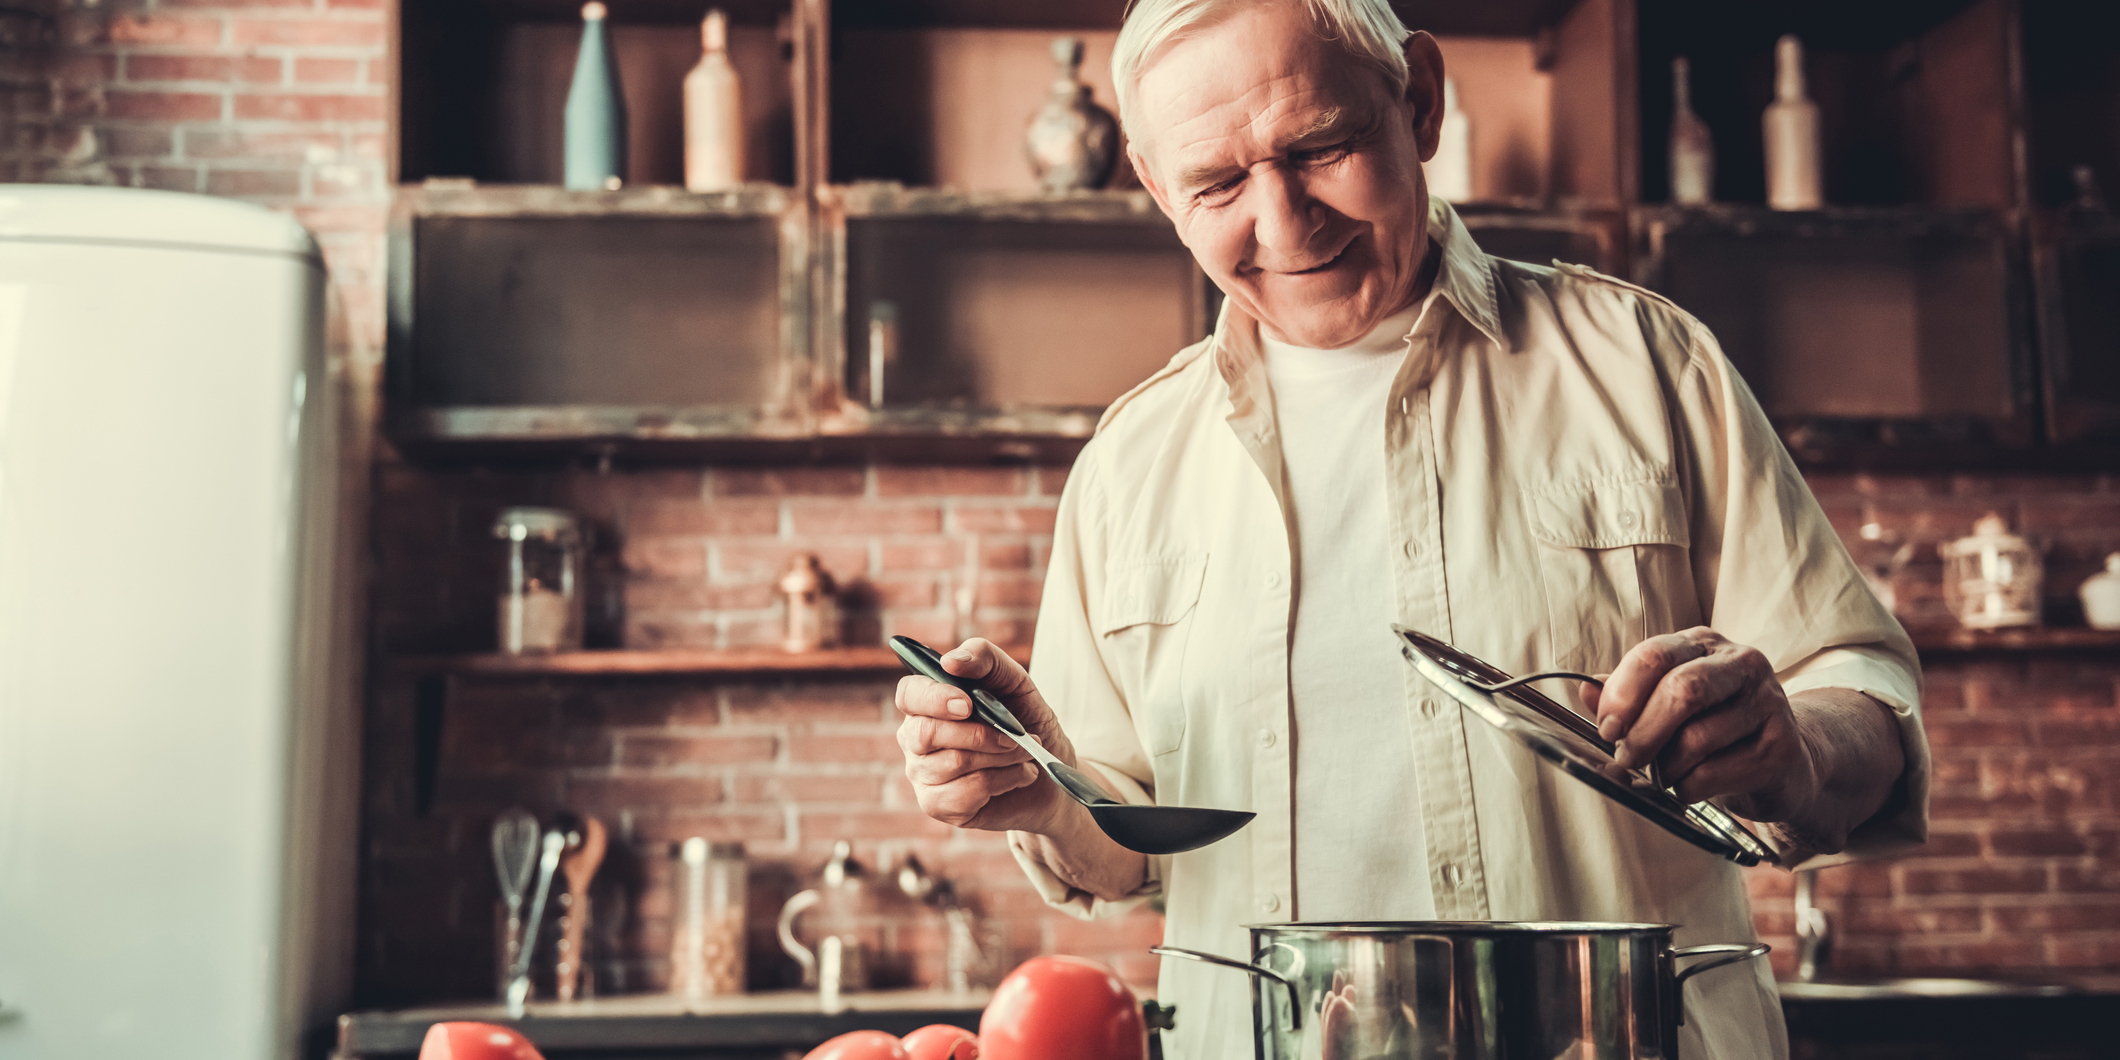 Handsome senior man is smiling while cooking in kitchen